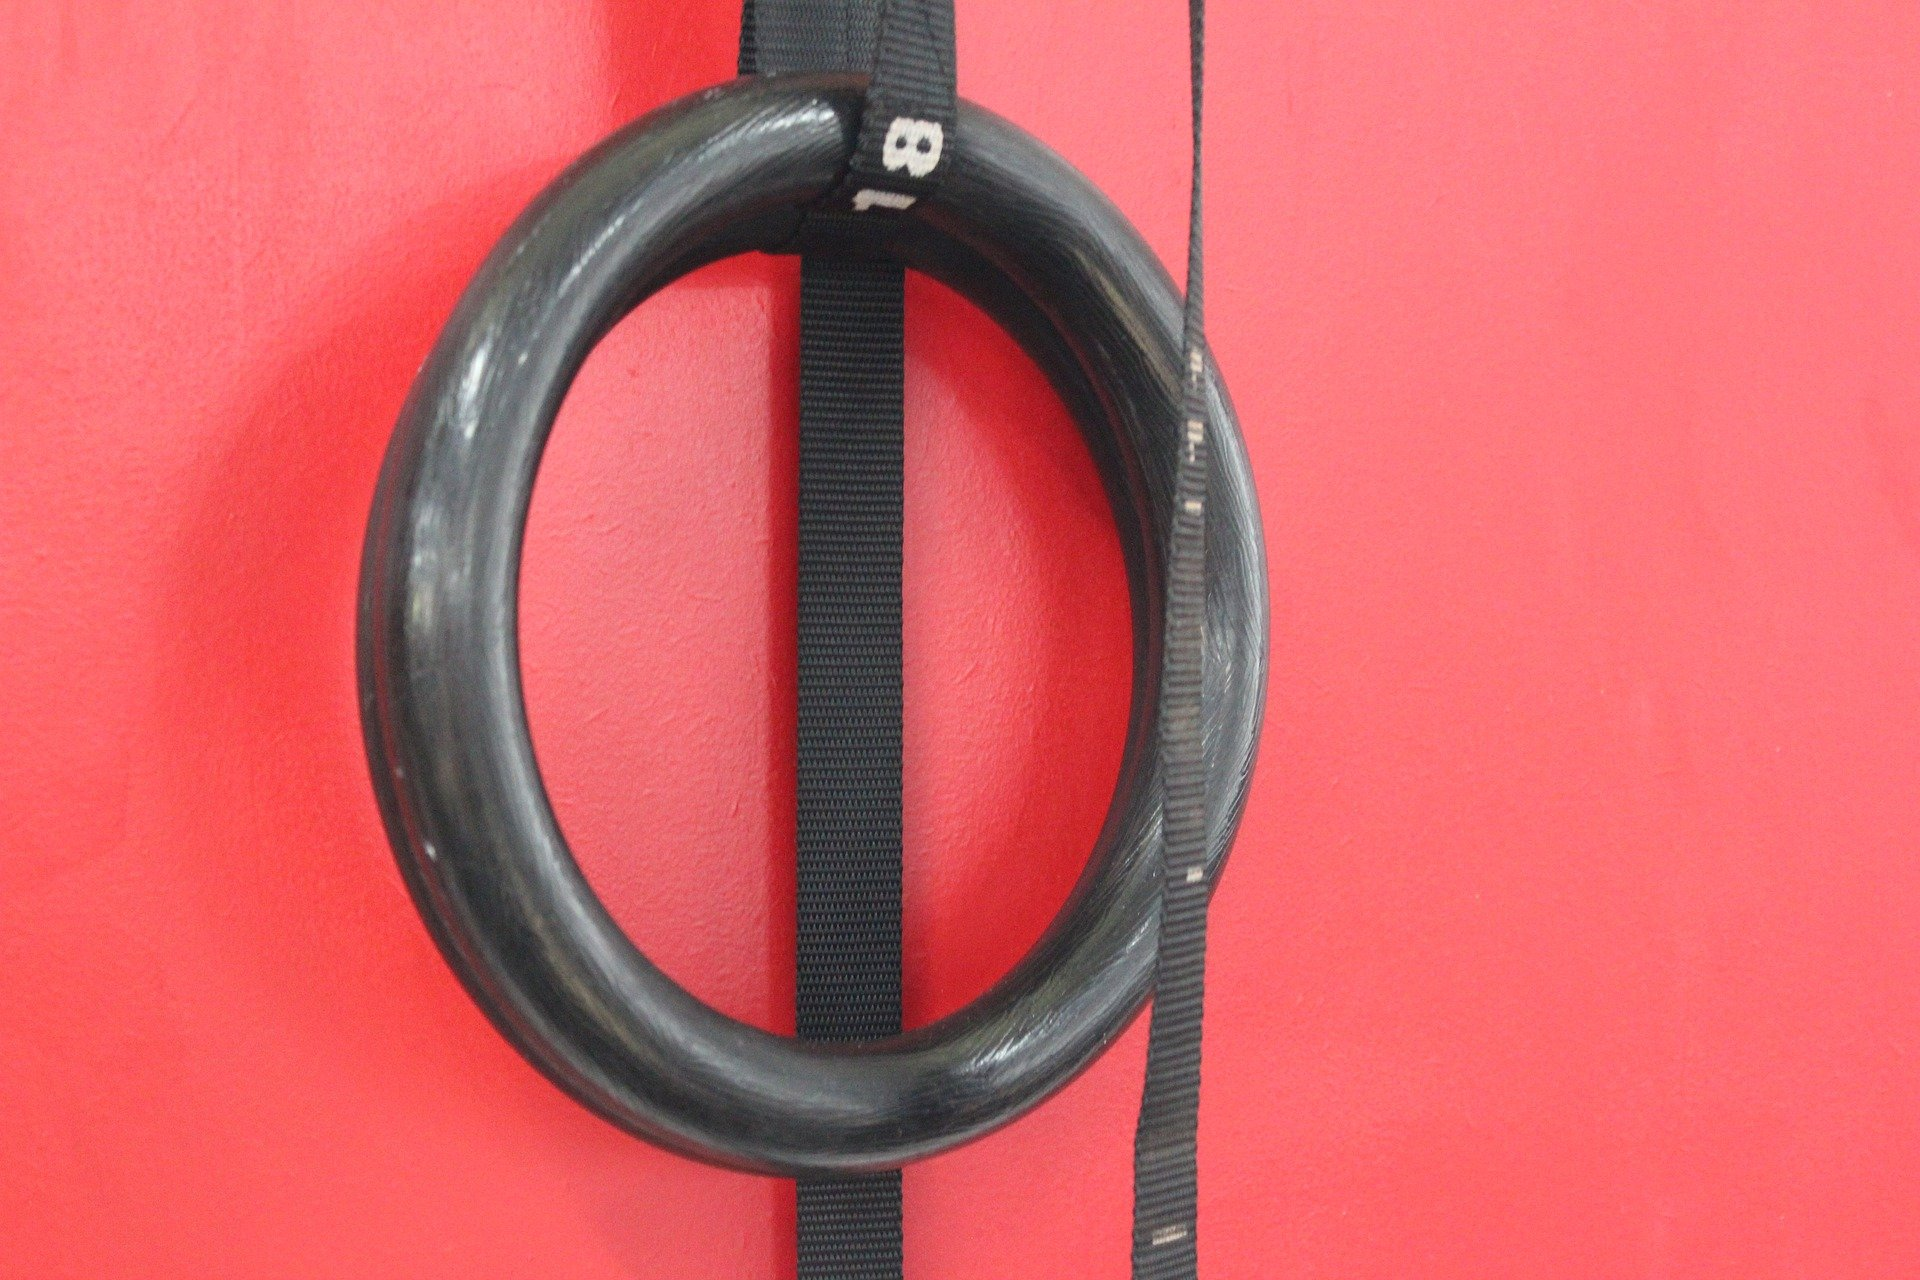 Gymnastic rings come in all shapes and sizes, but let's point you in the right direction on what to buy.